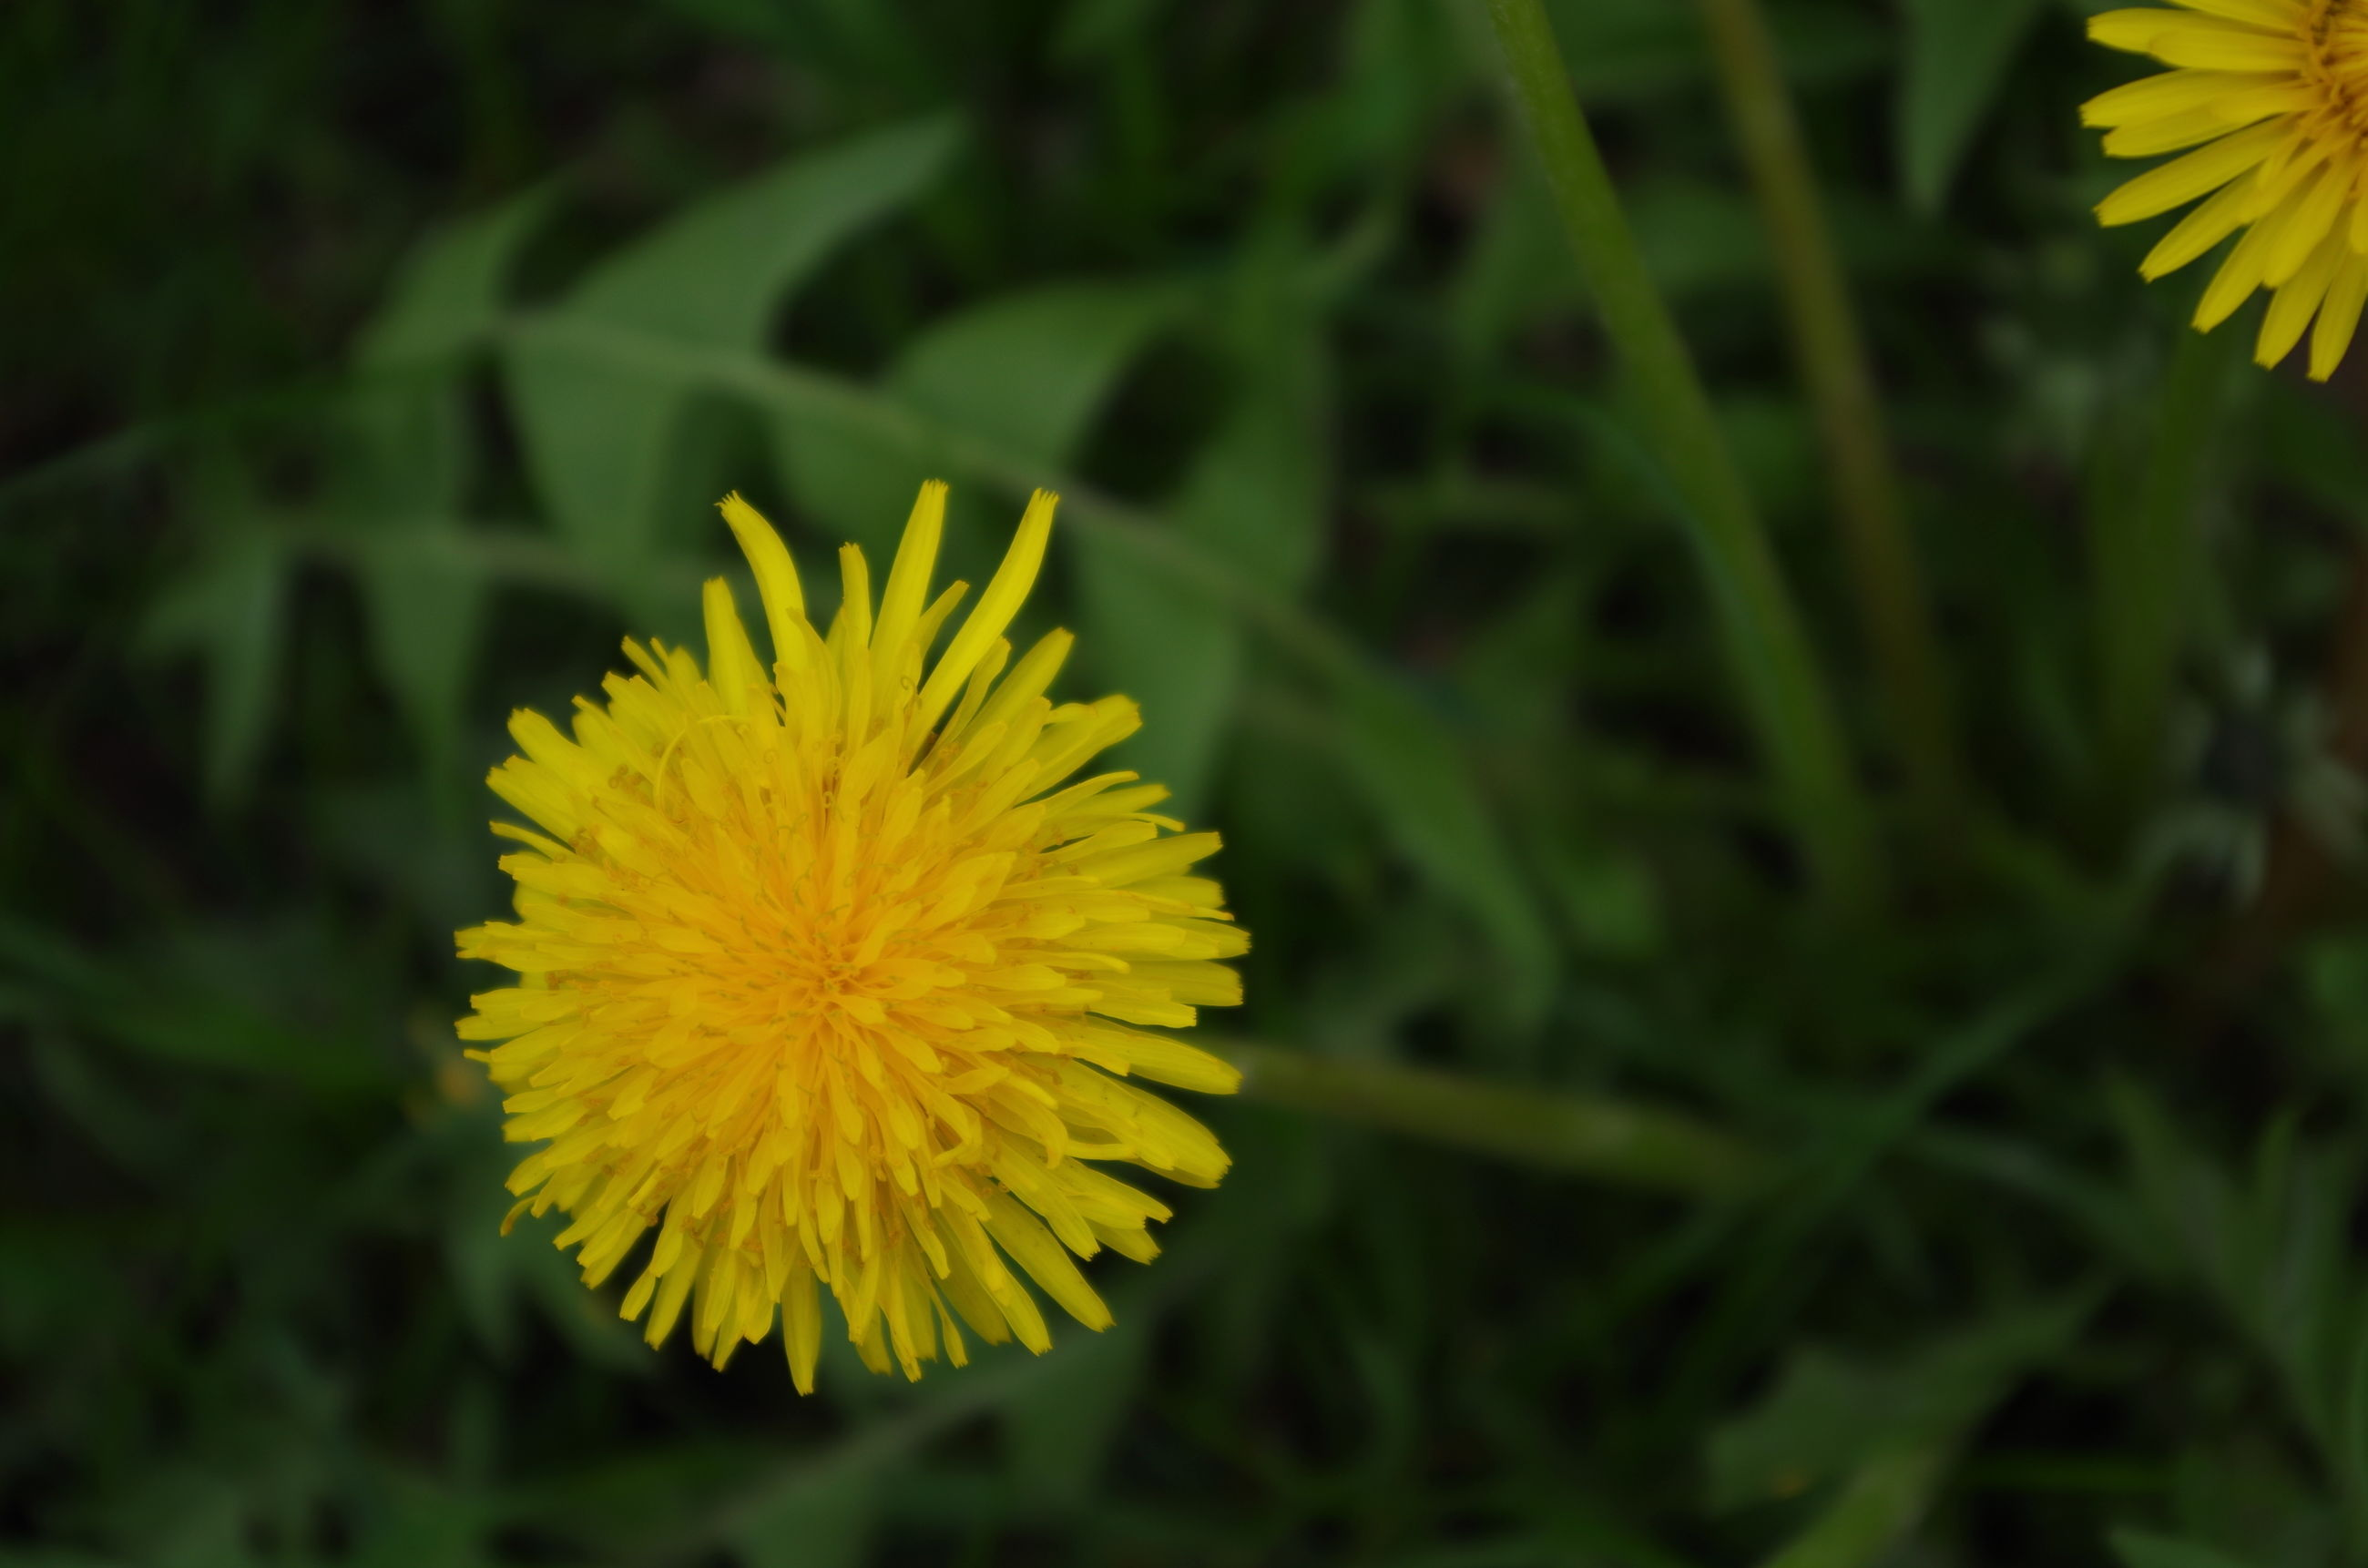 flower, freshness, yellow, fragility, flower head, petal, growth, beauty in nature, close-up, blooming, focus on foreground, nature, plant, single flower, dandelion, pollen, in bloom, field, blossom, outdoors